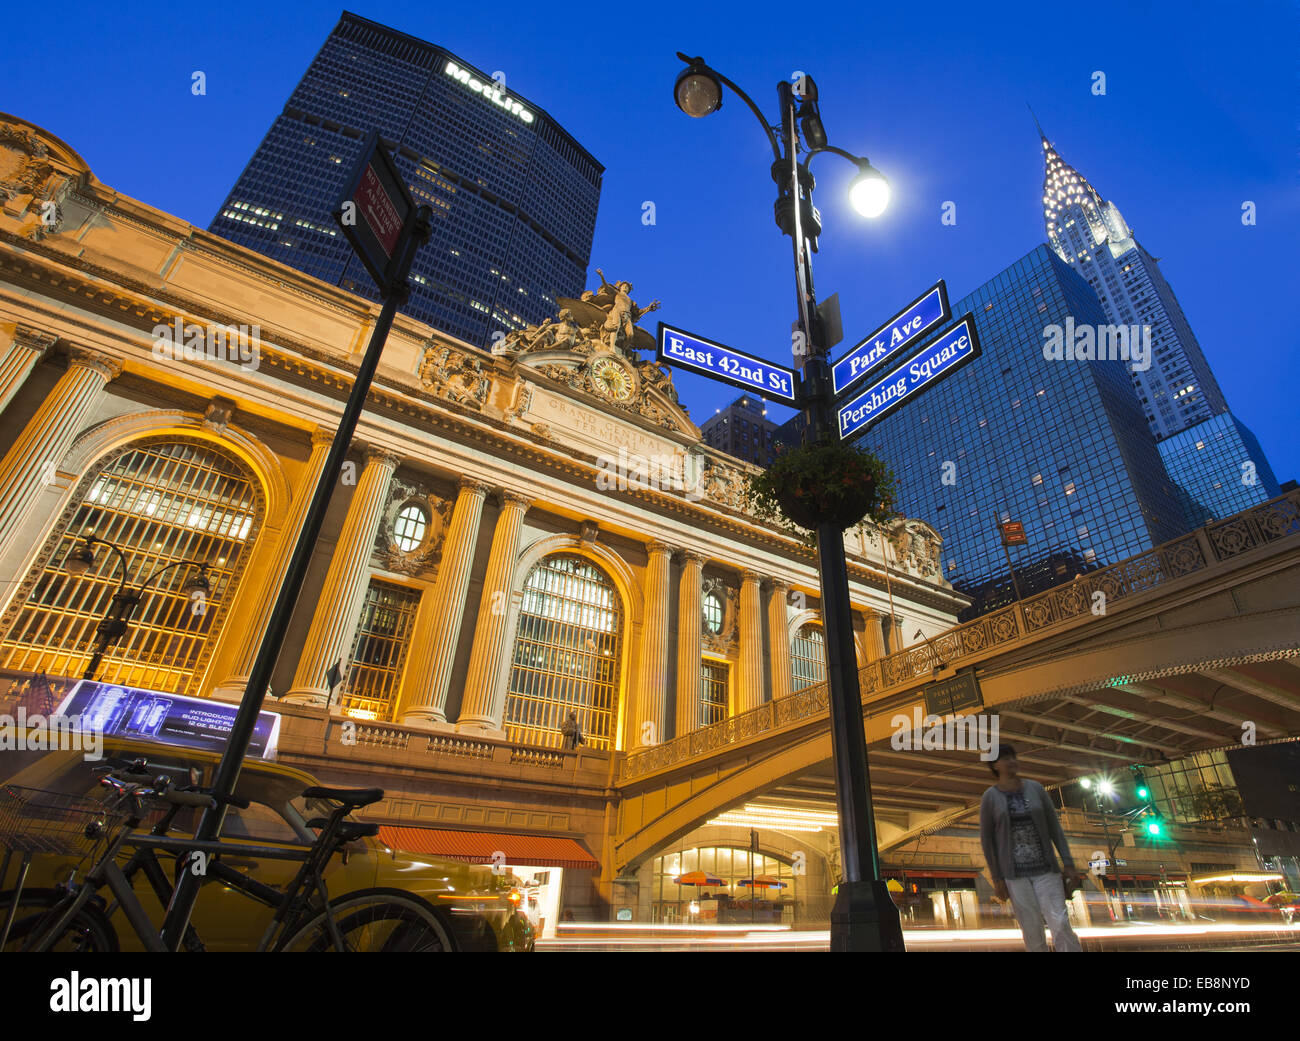 East 42nd Street and Park Avenue street sign Grand Central Station or Grand Central Terminal Met Life building Pershing - Stock Image